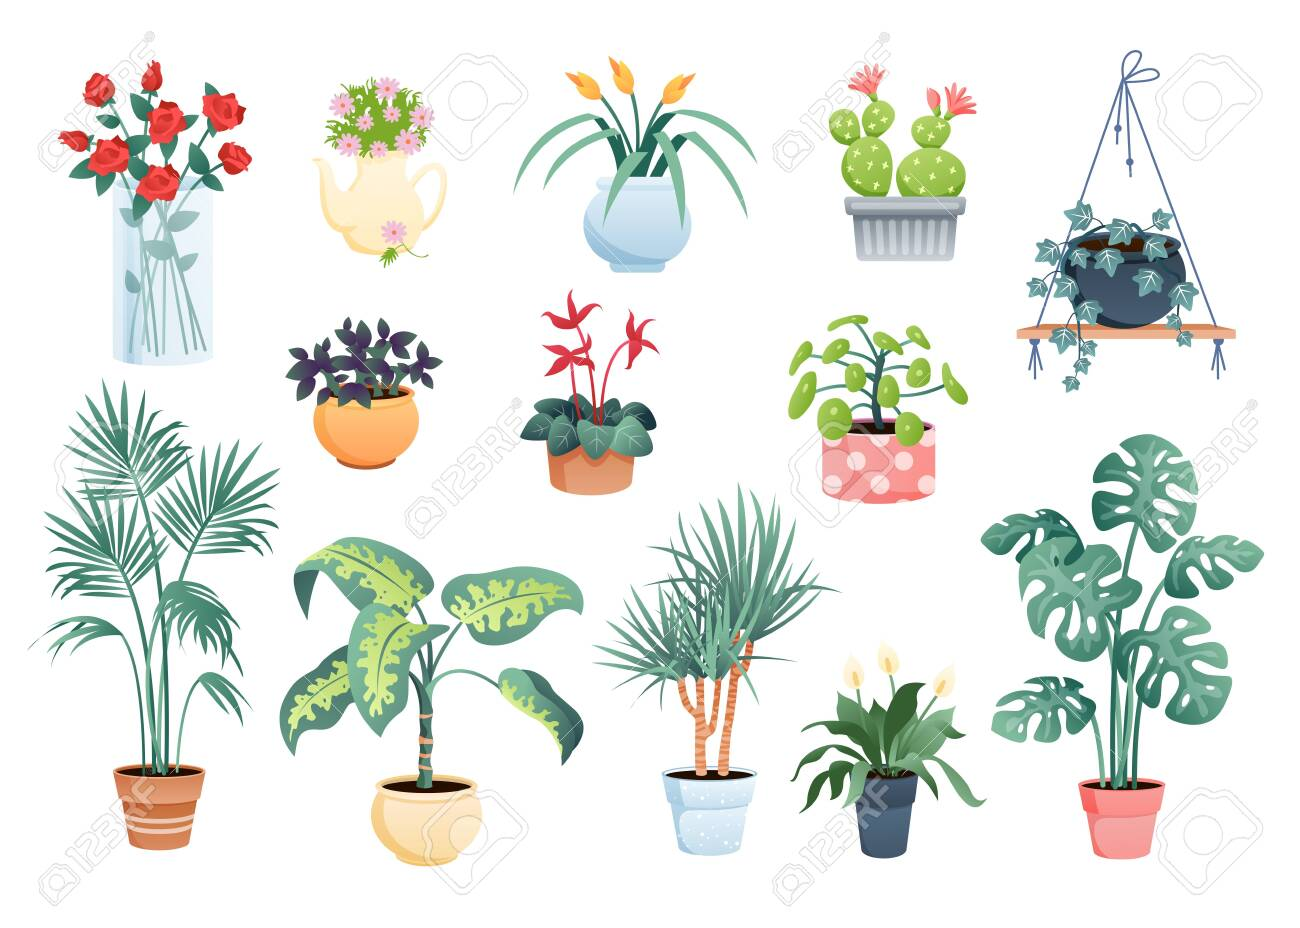 House plants home decor vector illustration set. Cartoon flat potted plants and flowers collection of houseplants in macrame pot, clay or glass vase for indoor garden decoration isolated on white - 151954106